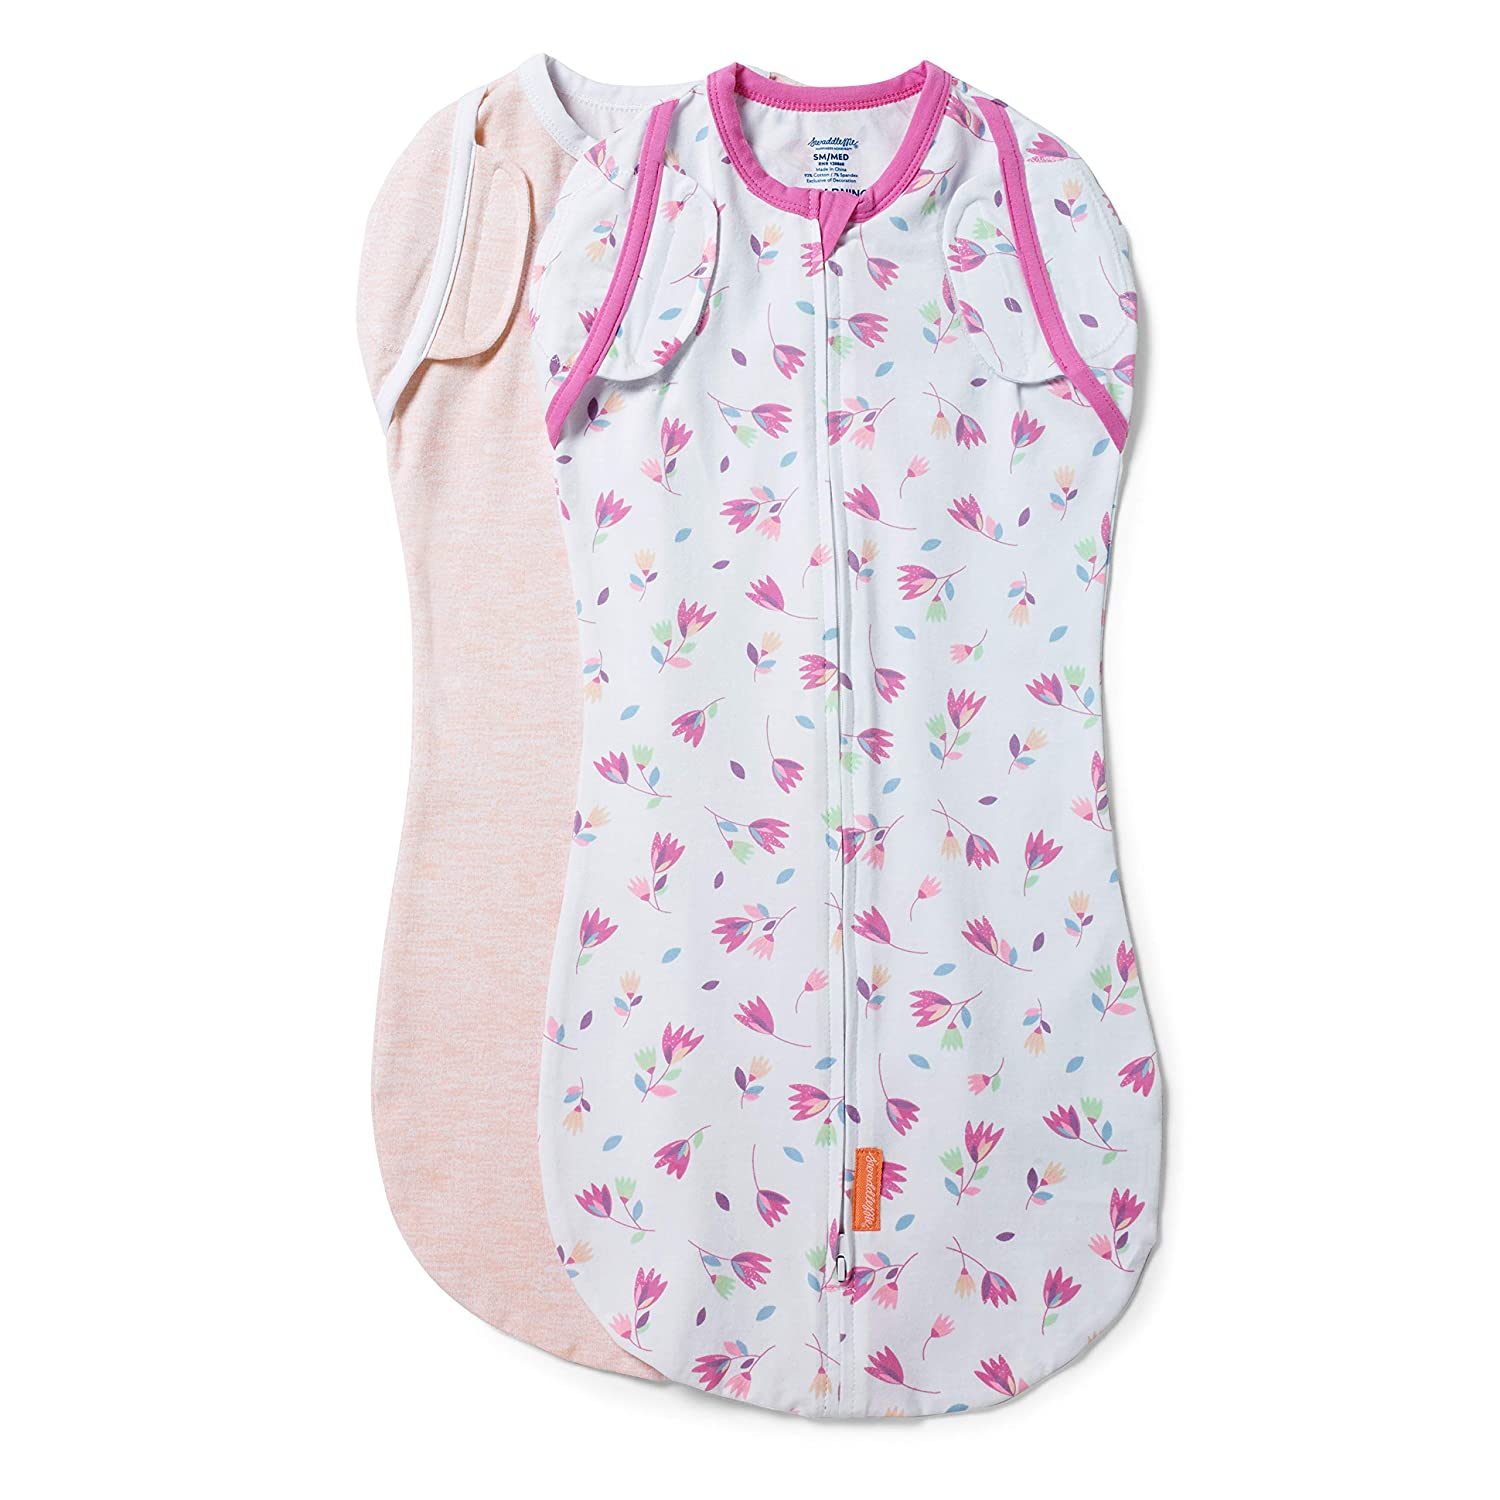 SwaddleMe Arms Free Convertible Pod – Size Large, 3-6 Months, 2-Pack (Tumbling Tulips)